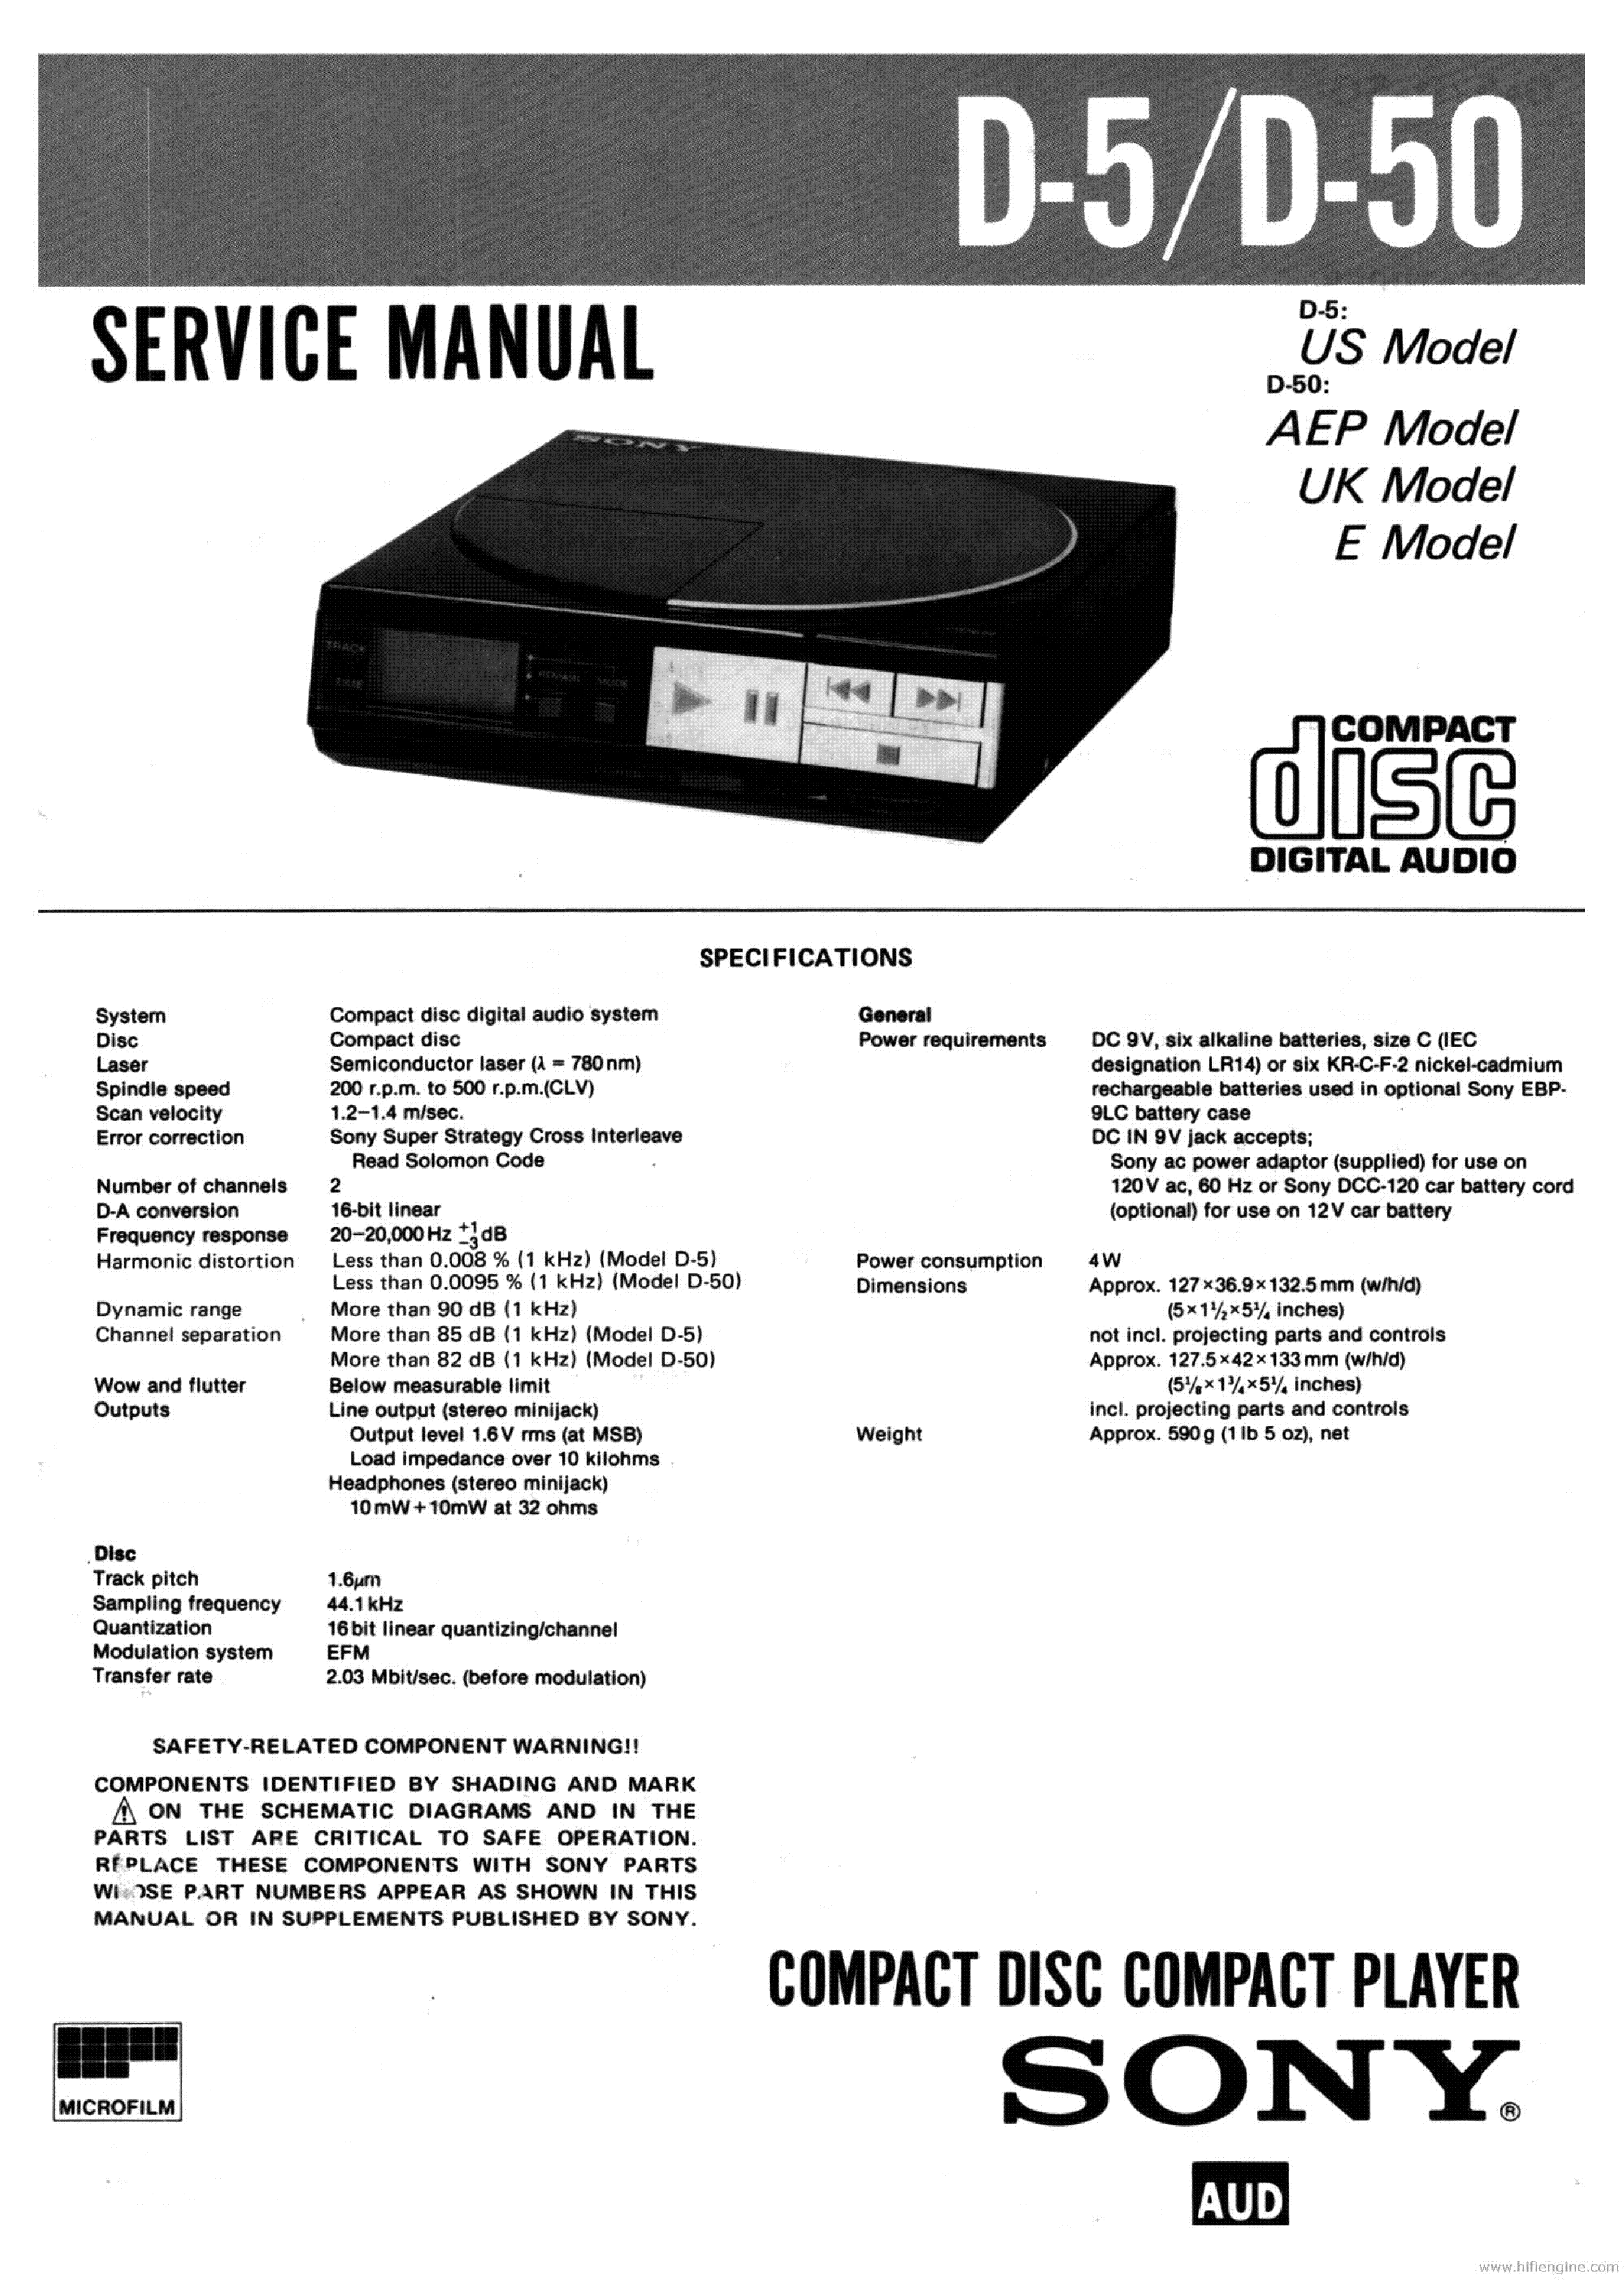 SONY D-5 D-50 CD PLAYER service manual (1st page)